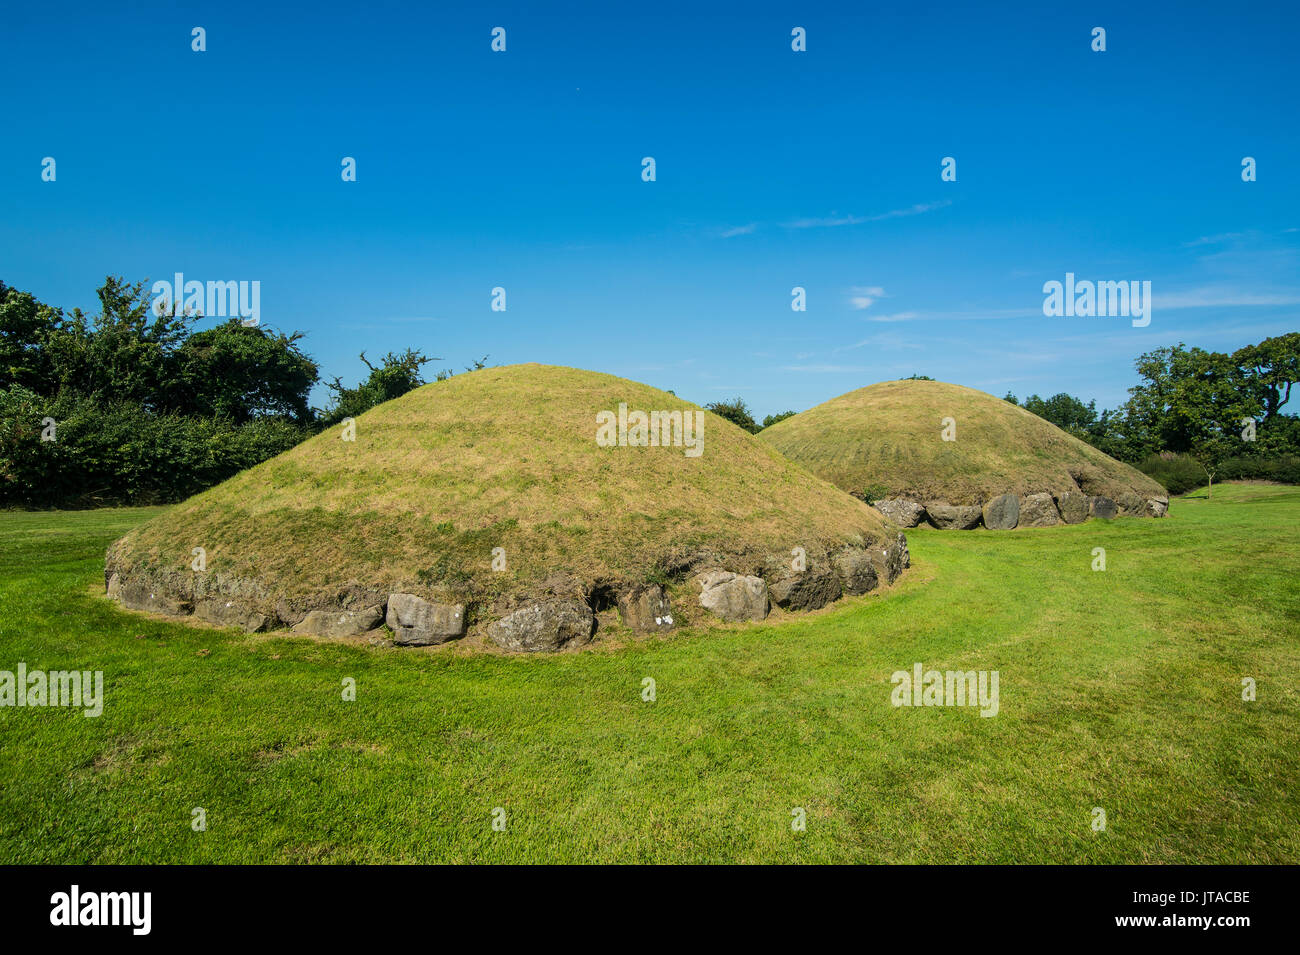 Knowth, Neolithic passage grave, UNESCO, prehistoric Bru na Boinne, Valley of the River Boyne, County Meath, Leinster, Ireland - Stock Image